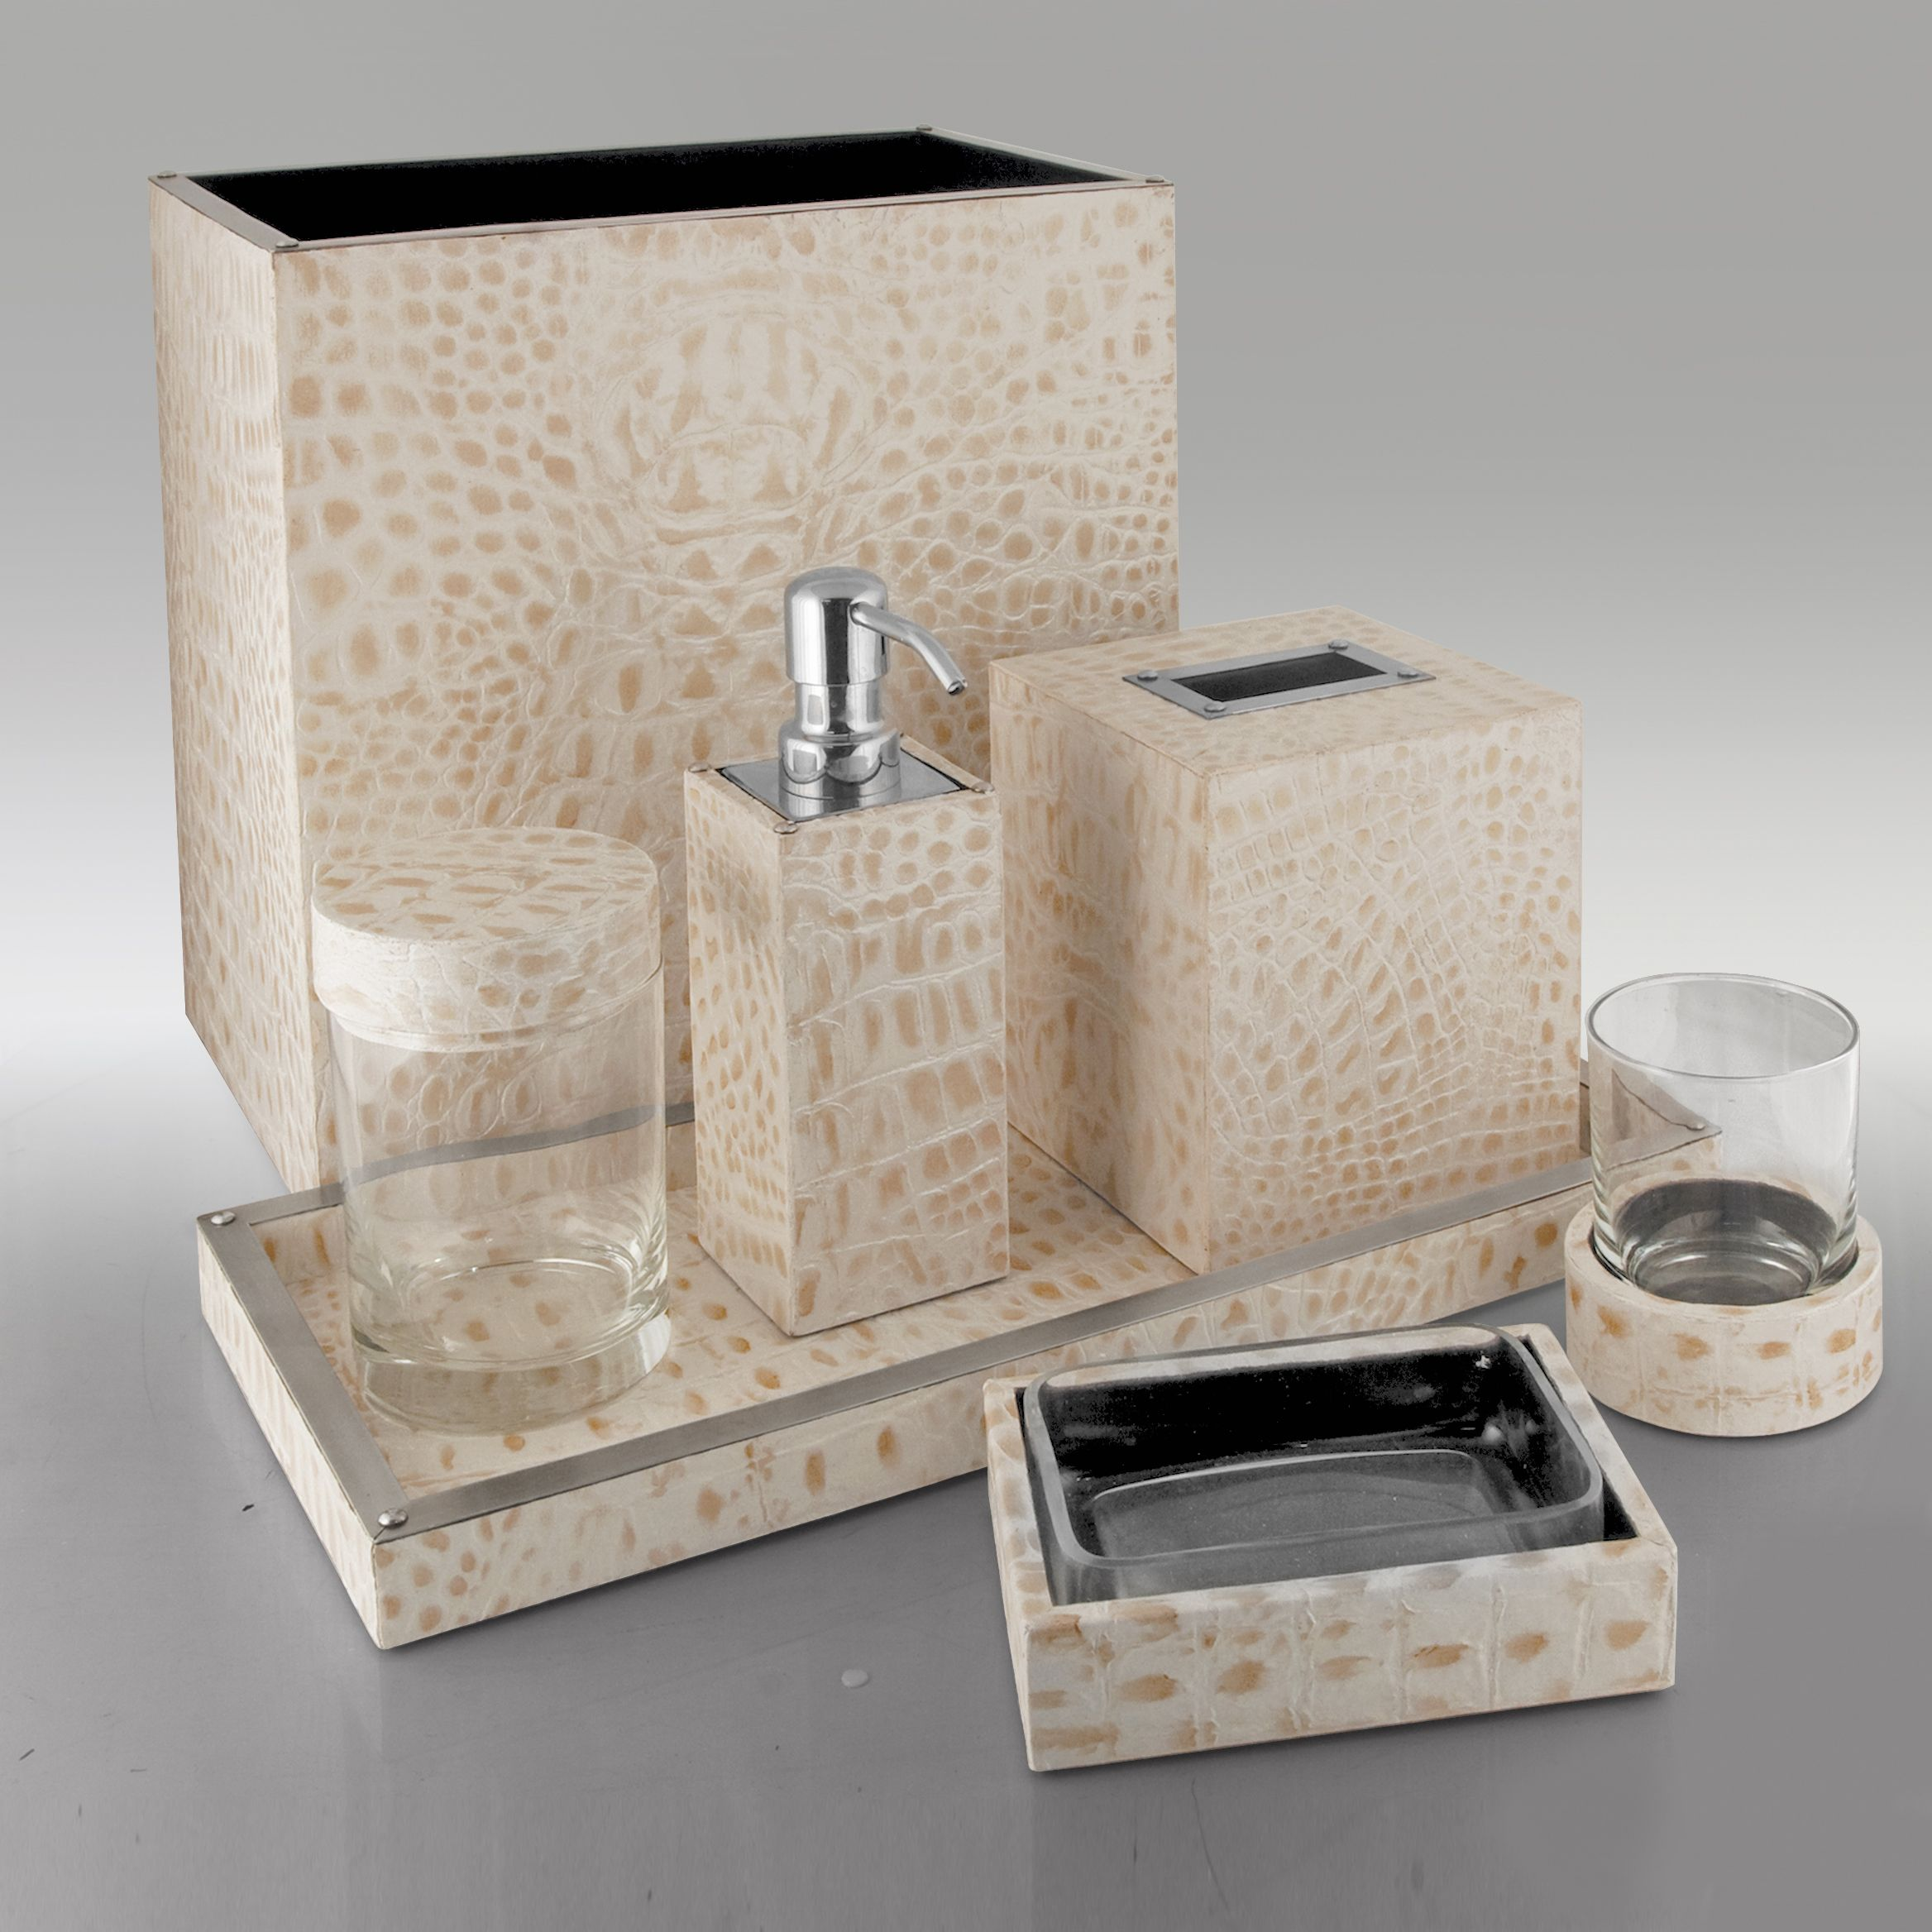 Genial Antique White Alligator Embossed Leather Bath By Gail DeLoach.